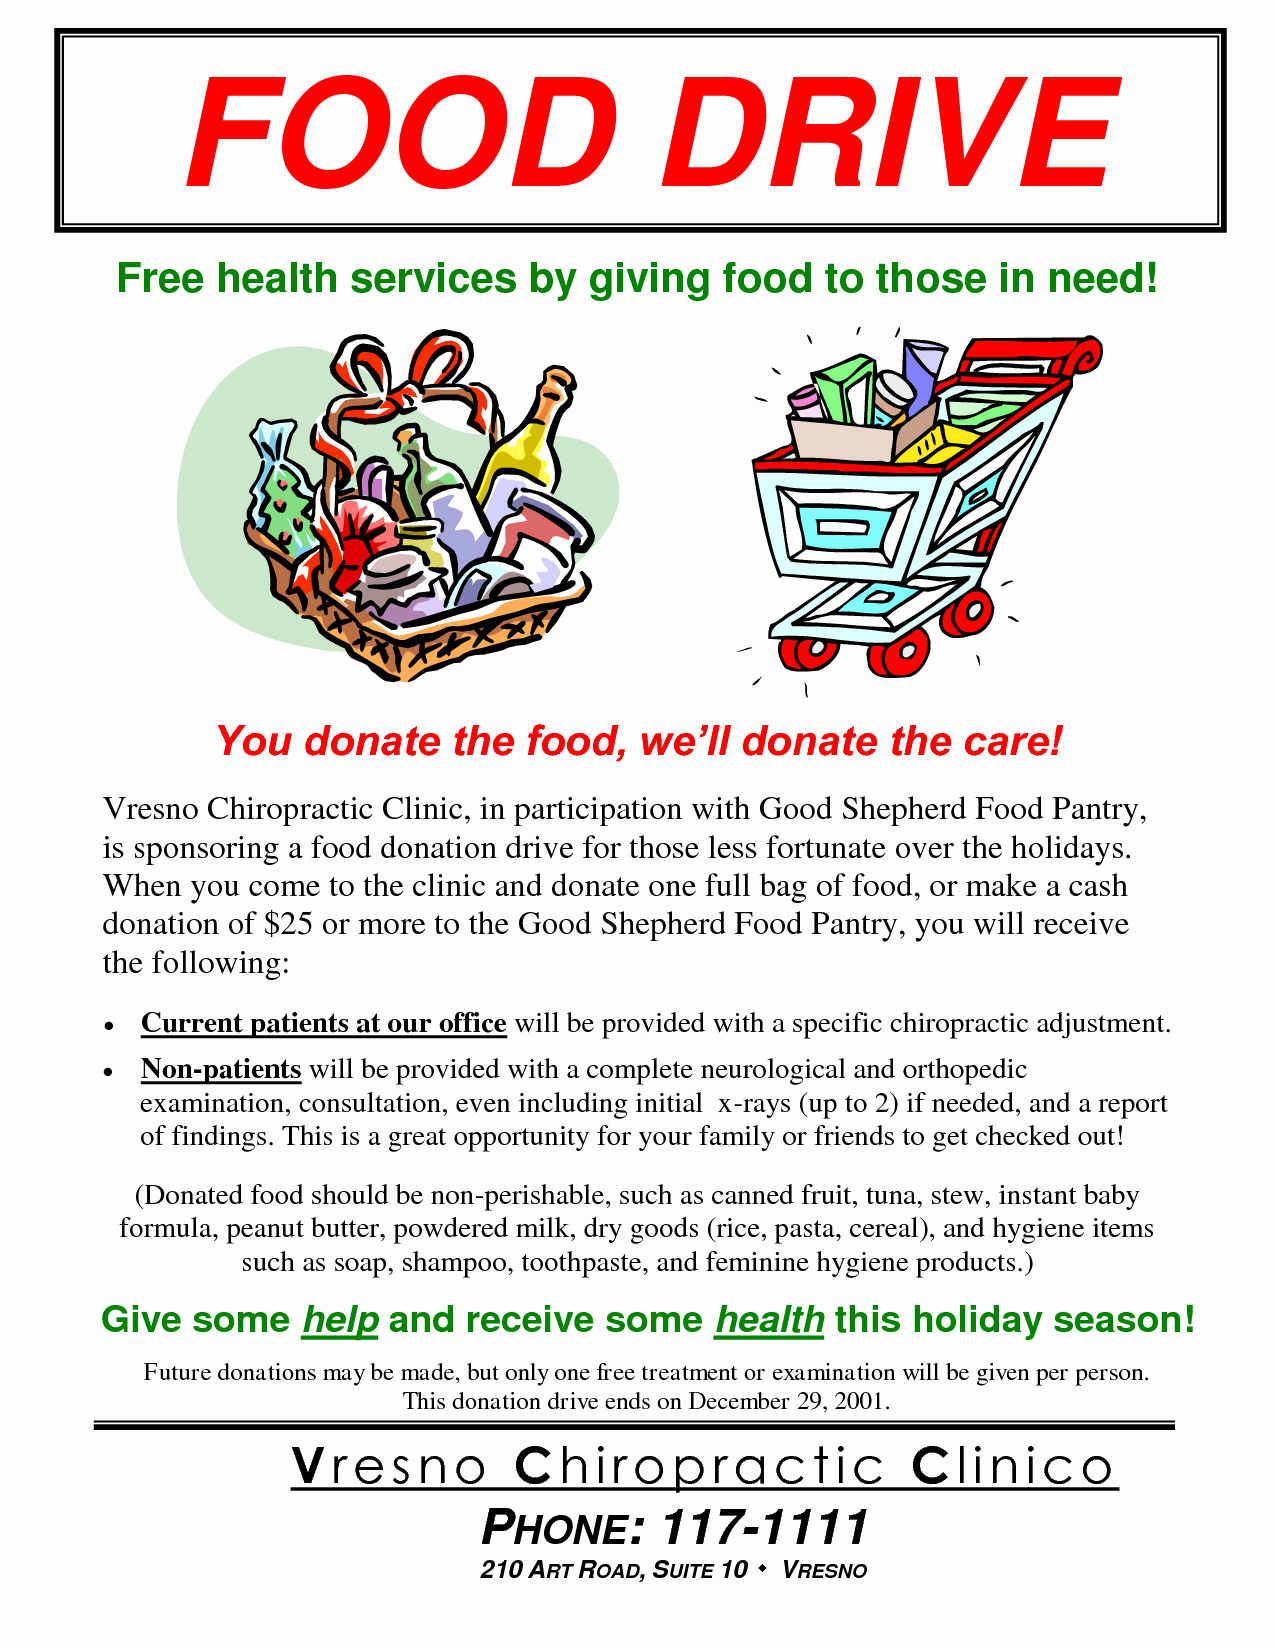 Food Drive Flyer Template Best Of Can Food Drive Flyer Template Portablegasgrillweber